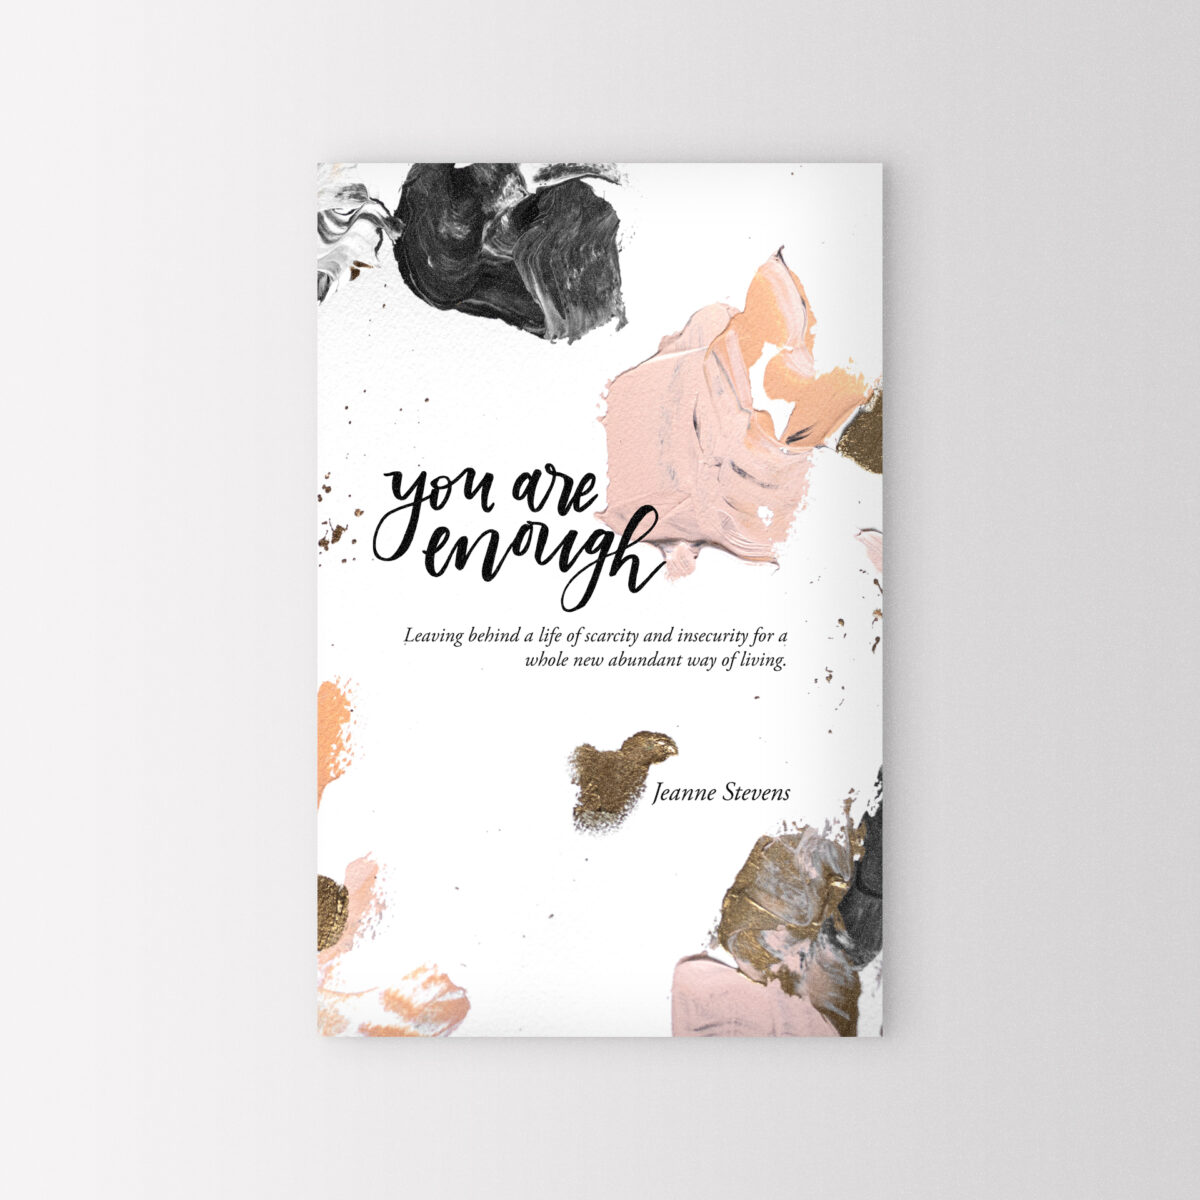 Youareenough Book 1920x1920